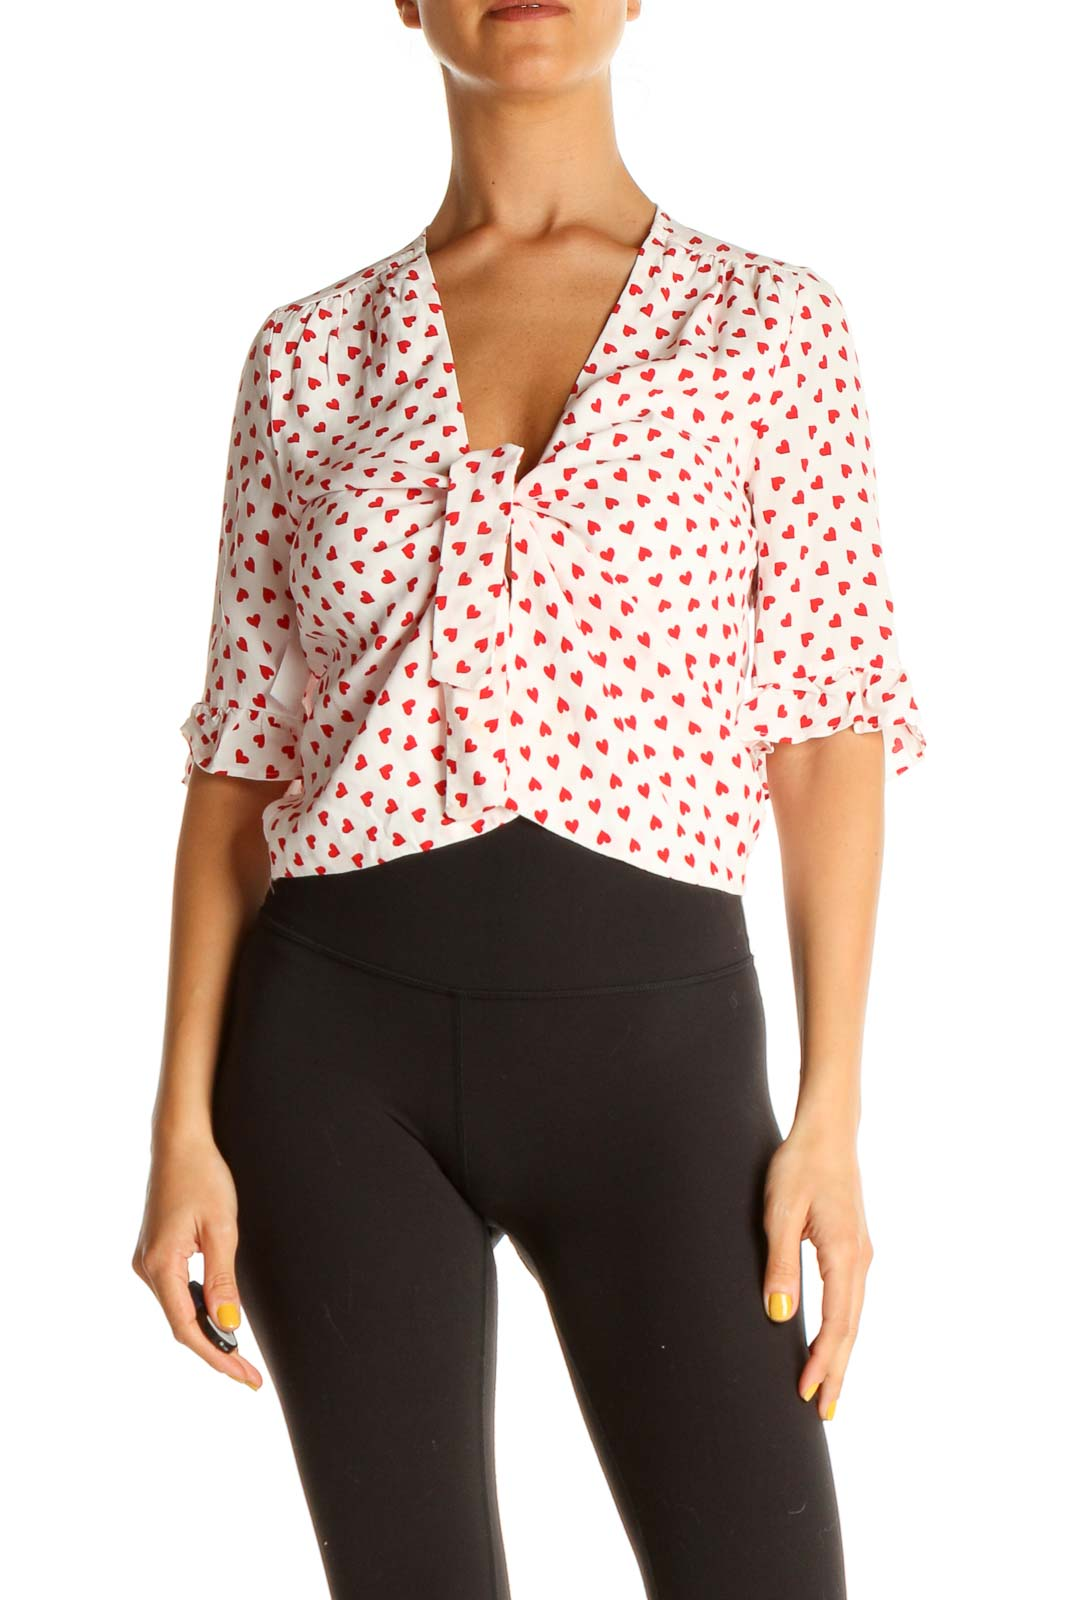 Red Heart Polka Dot All Day Wear Shirt Front